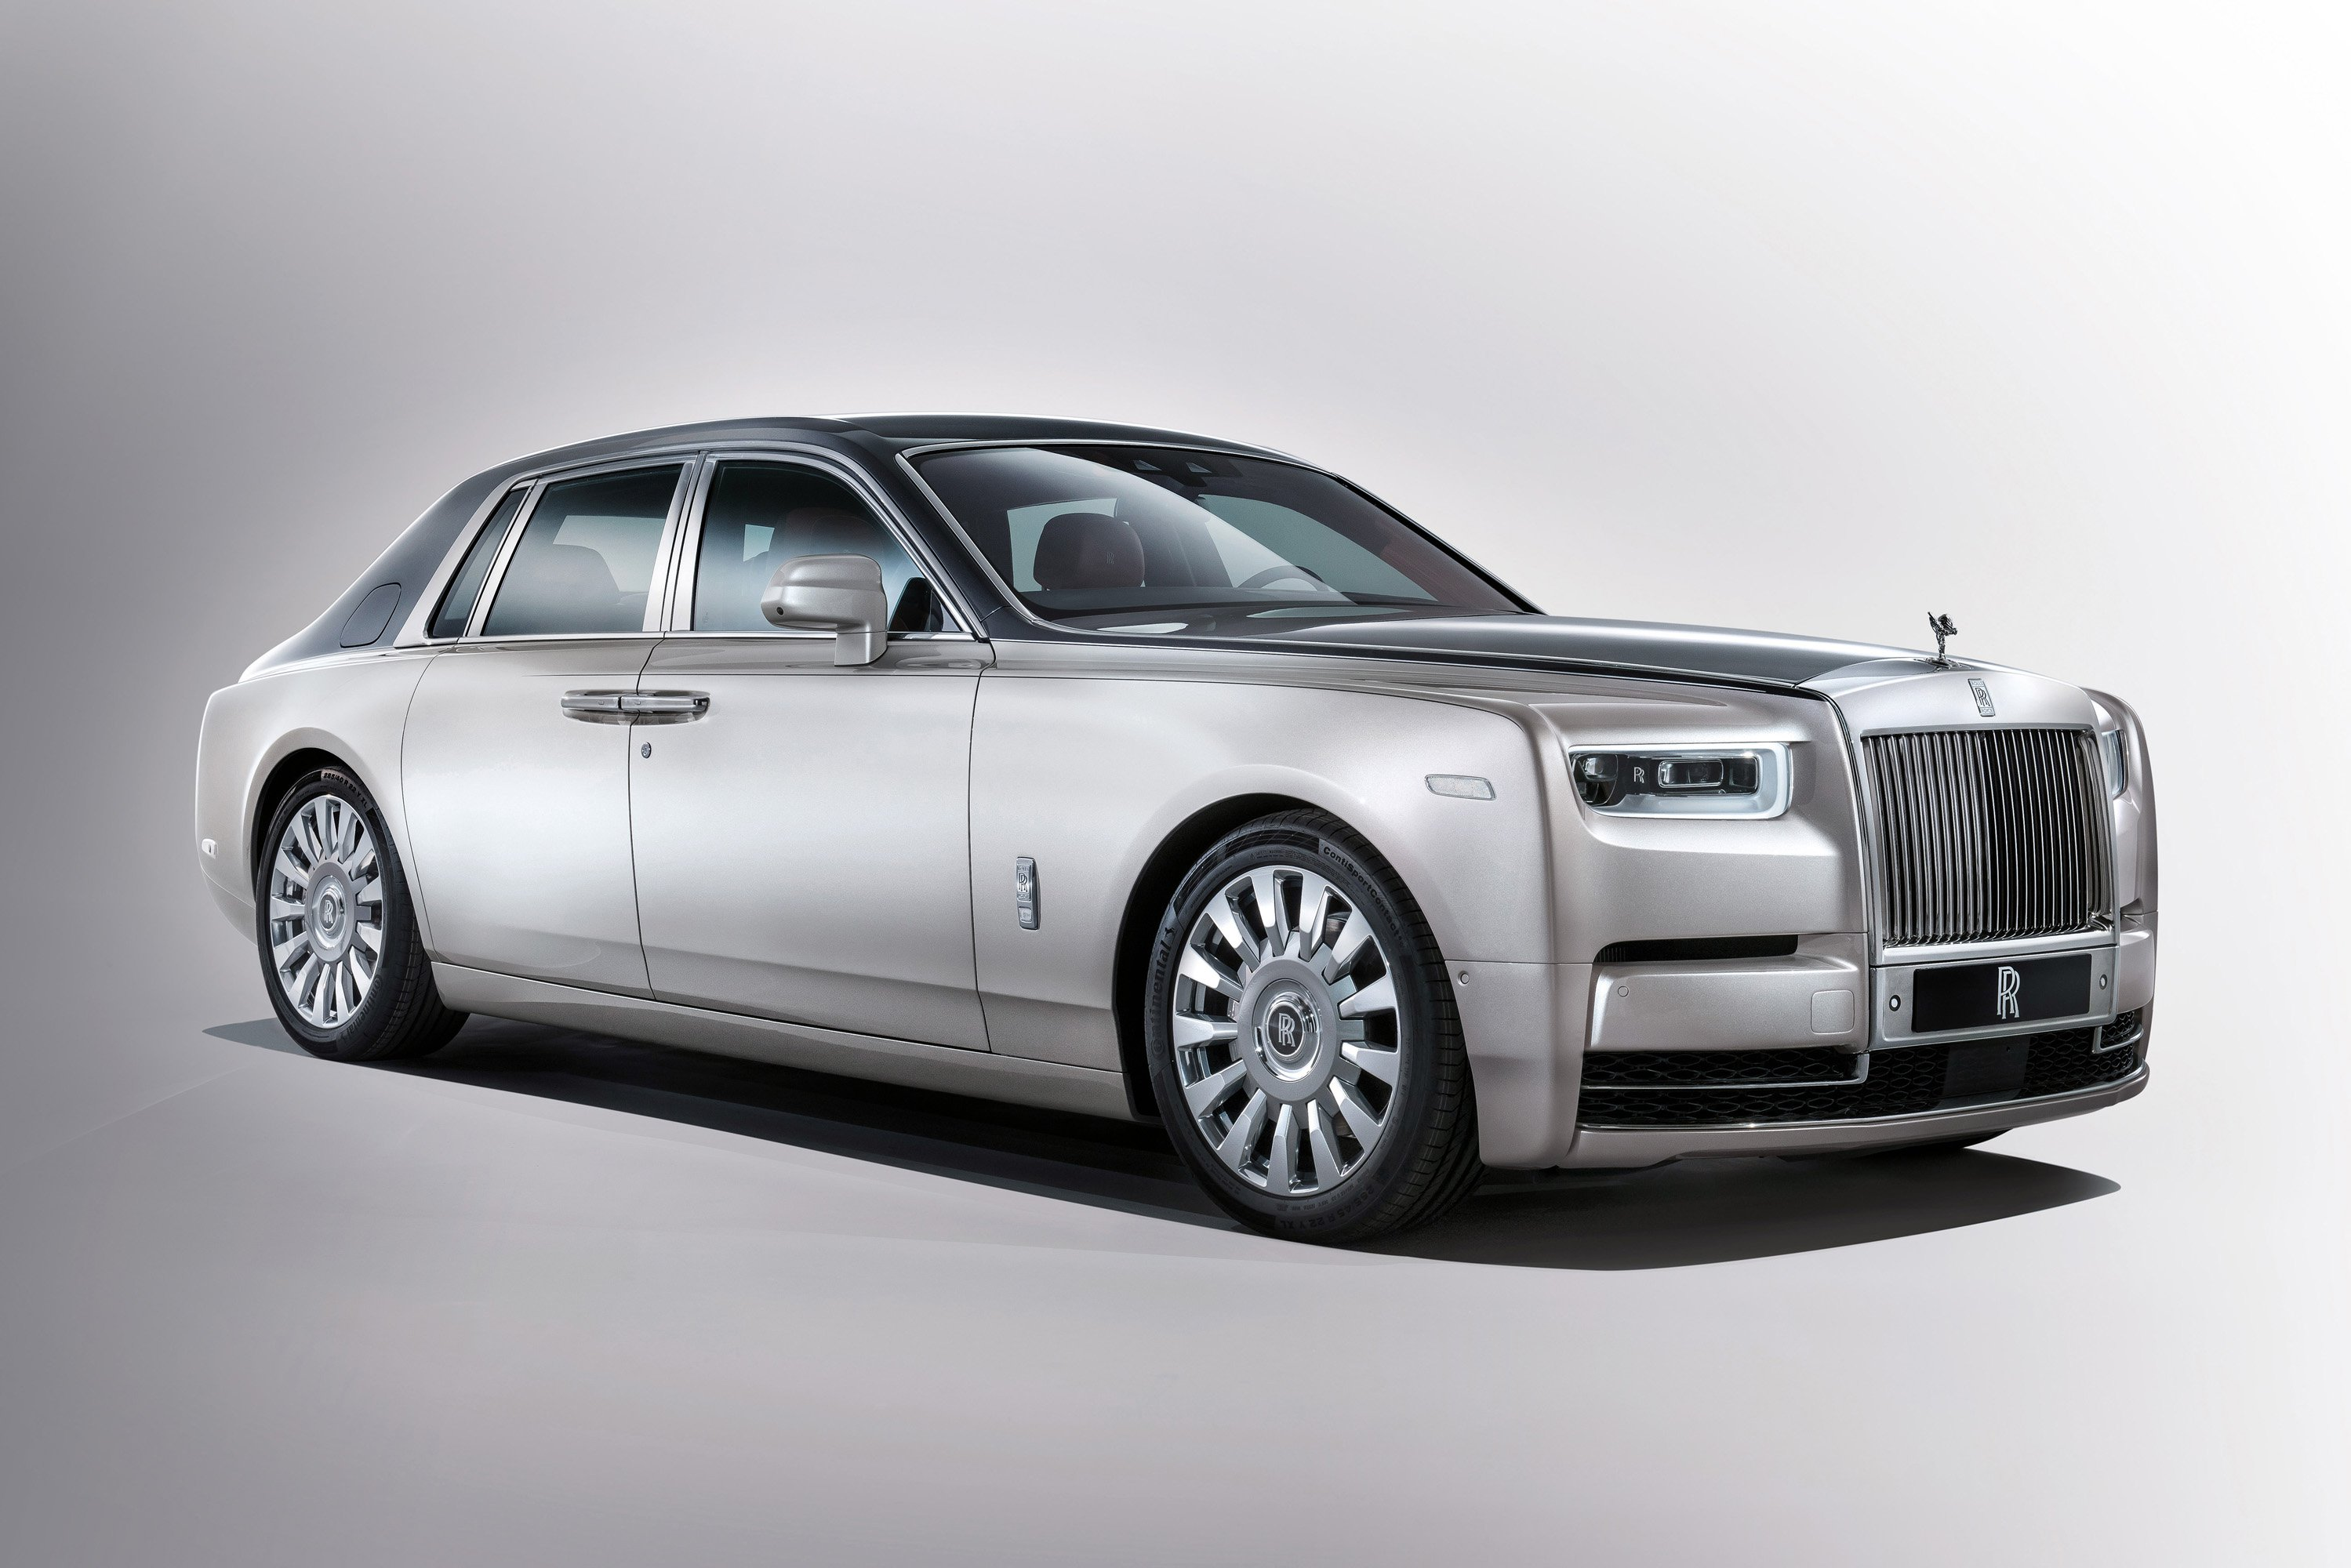 21 New 2020 Rolls Royce Wraith Prices